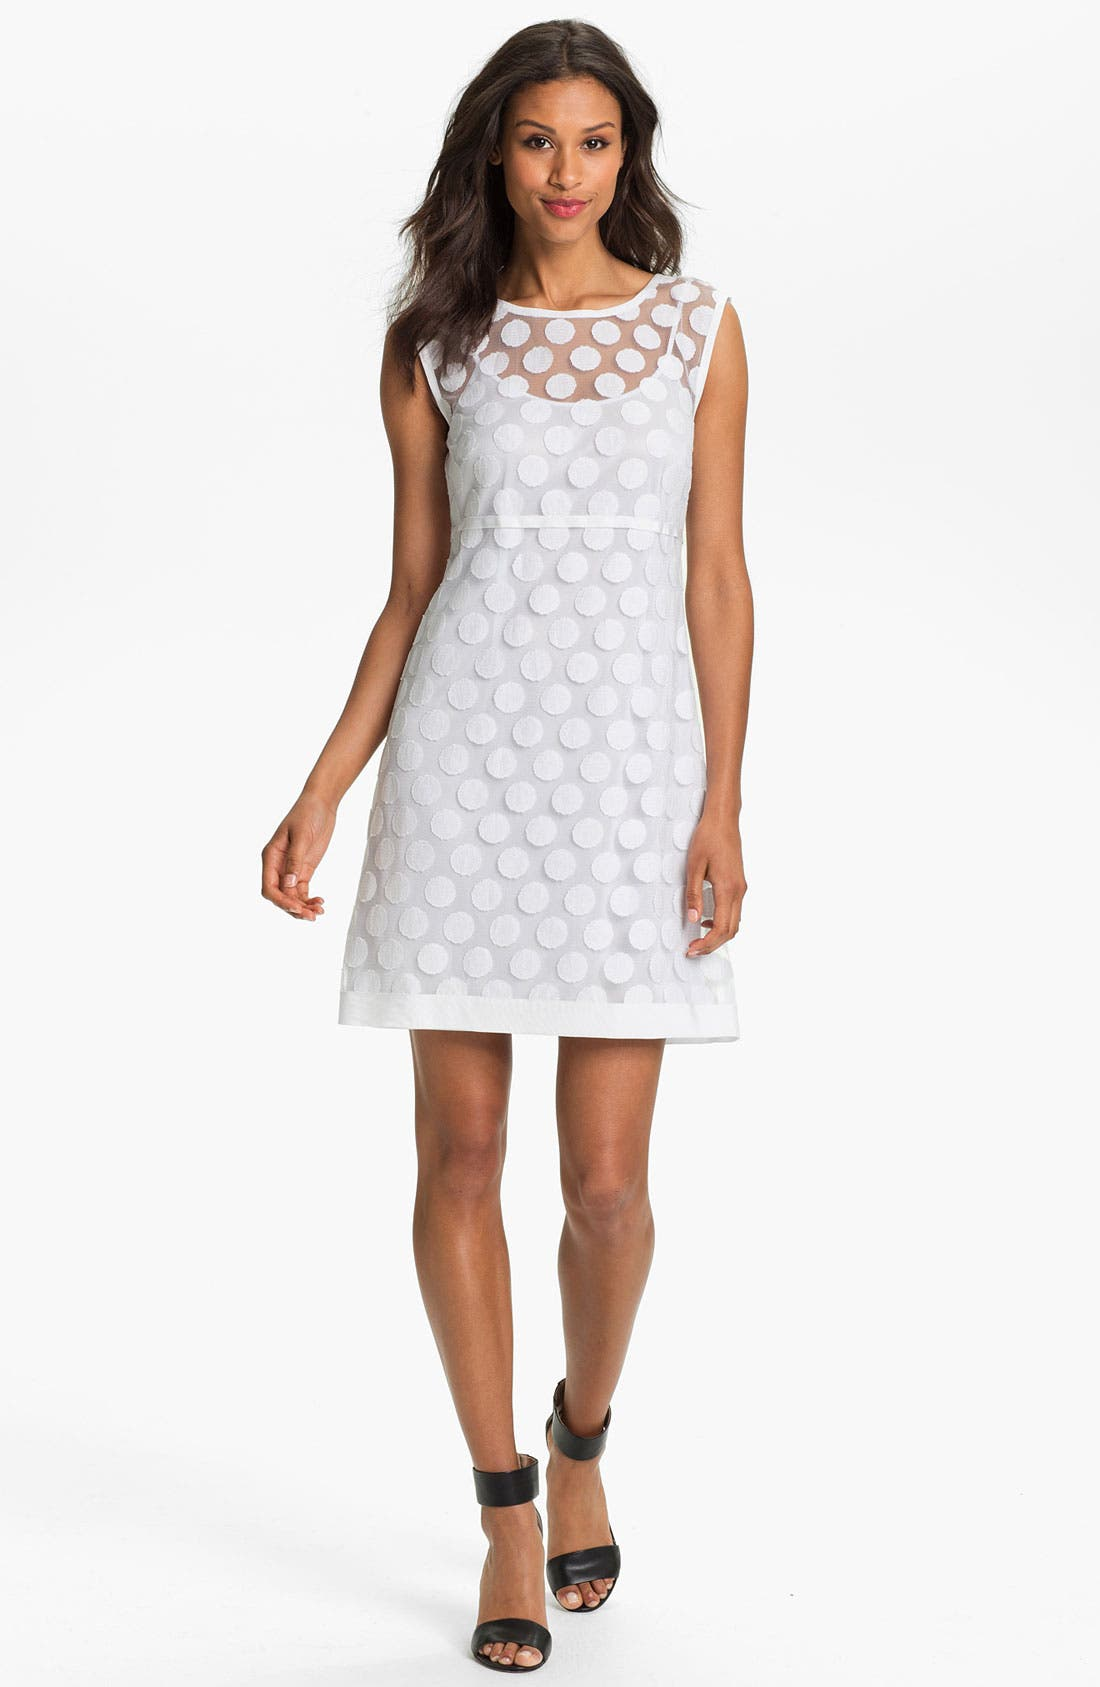 Main Image - Laundry by Shelli Segal Polka Dot Lace A-Line Dress